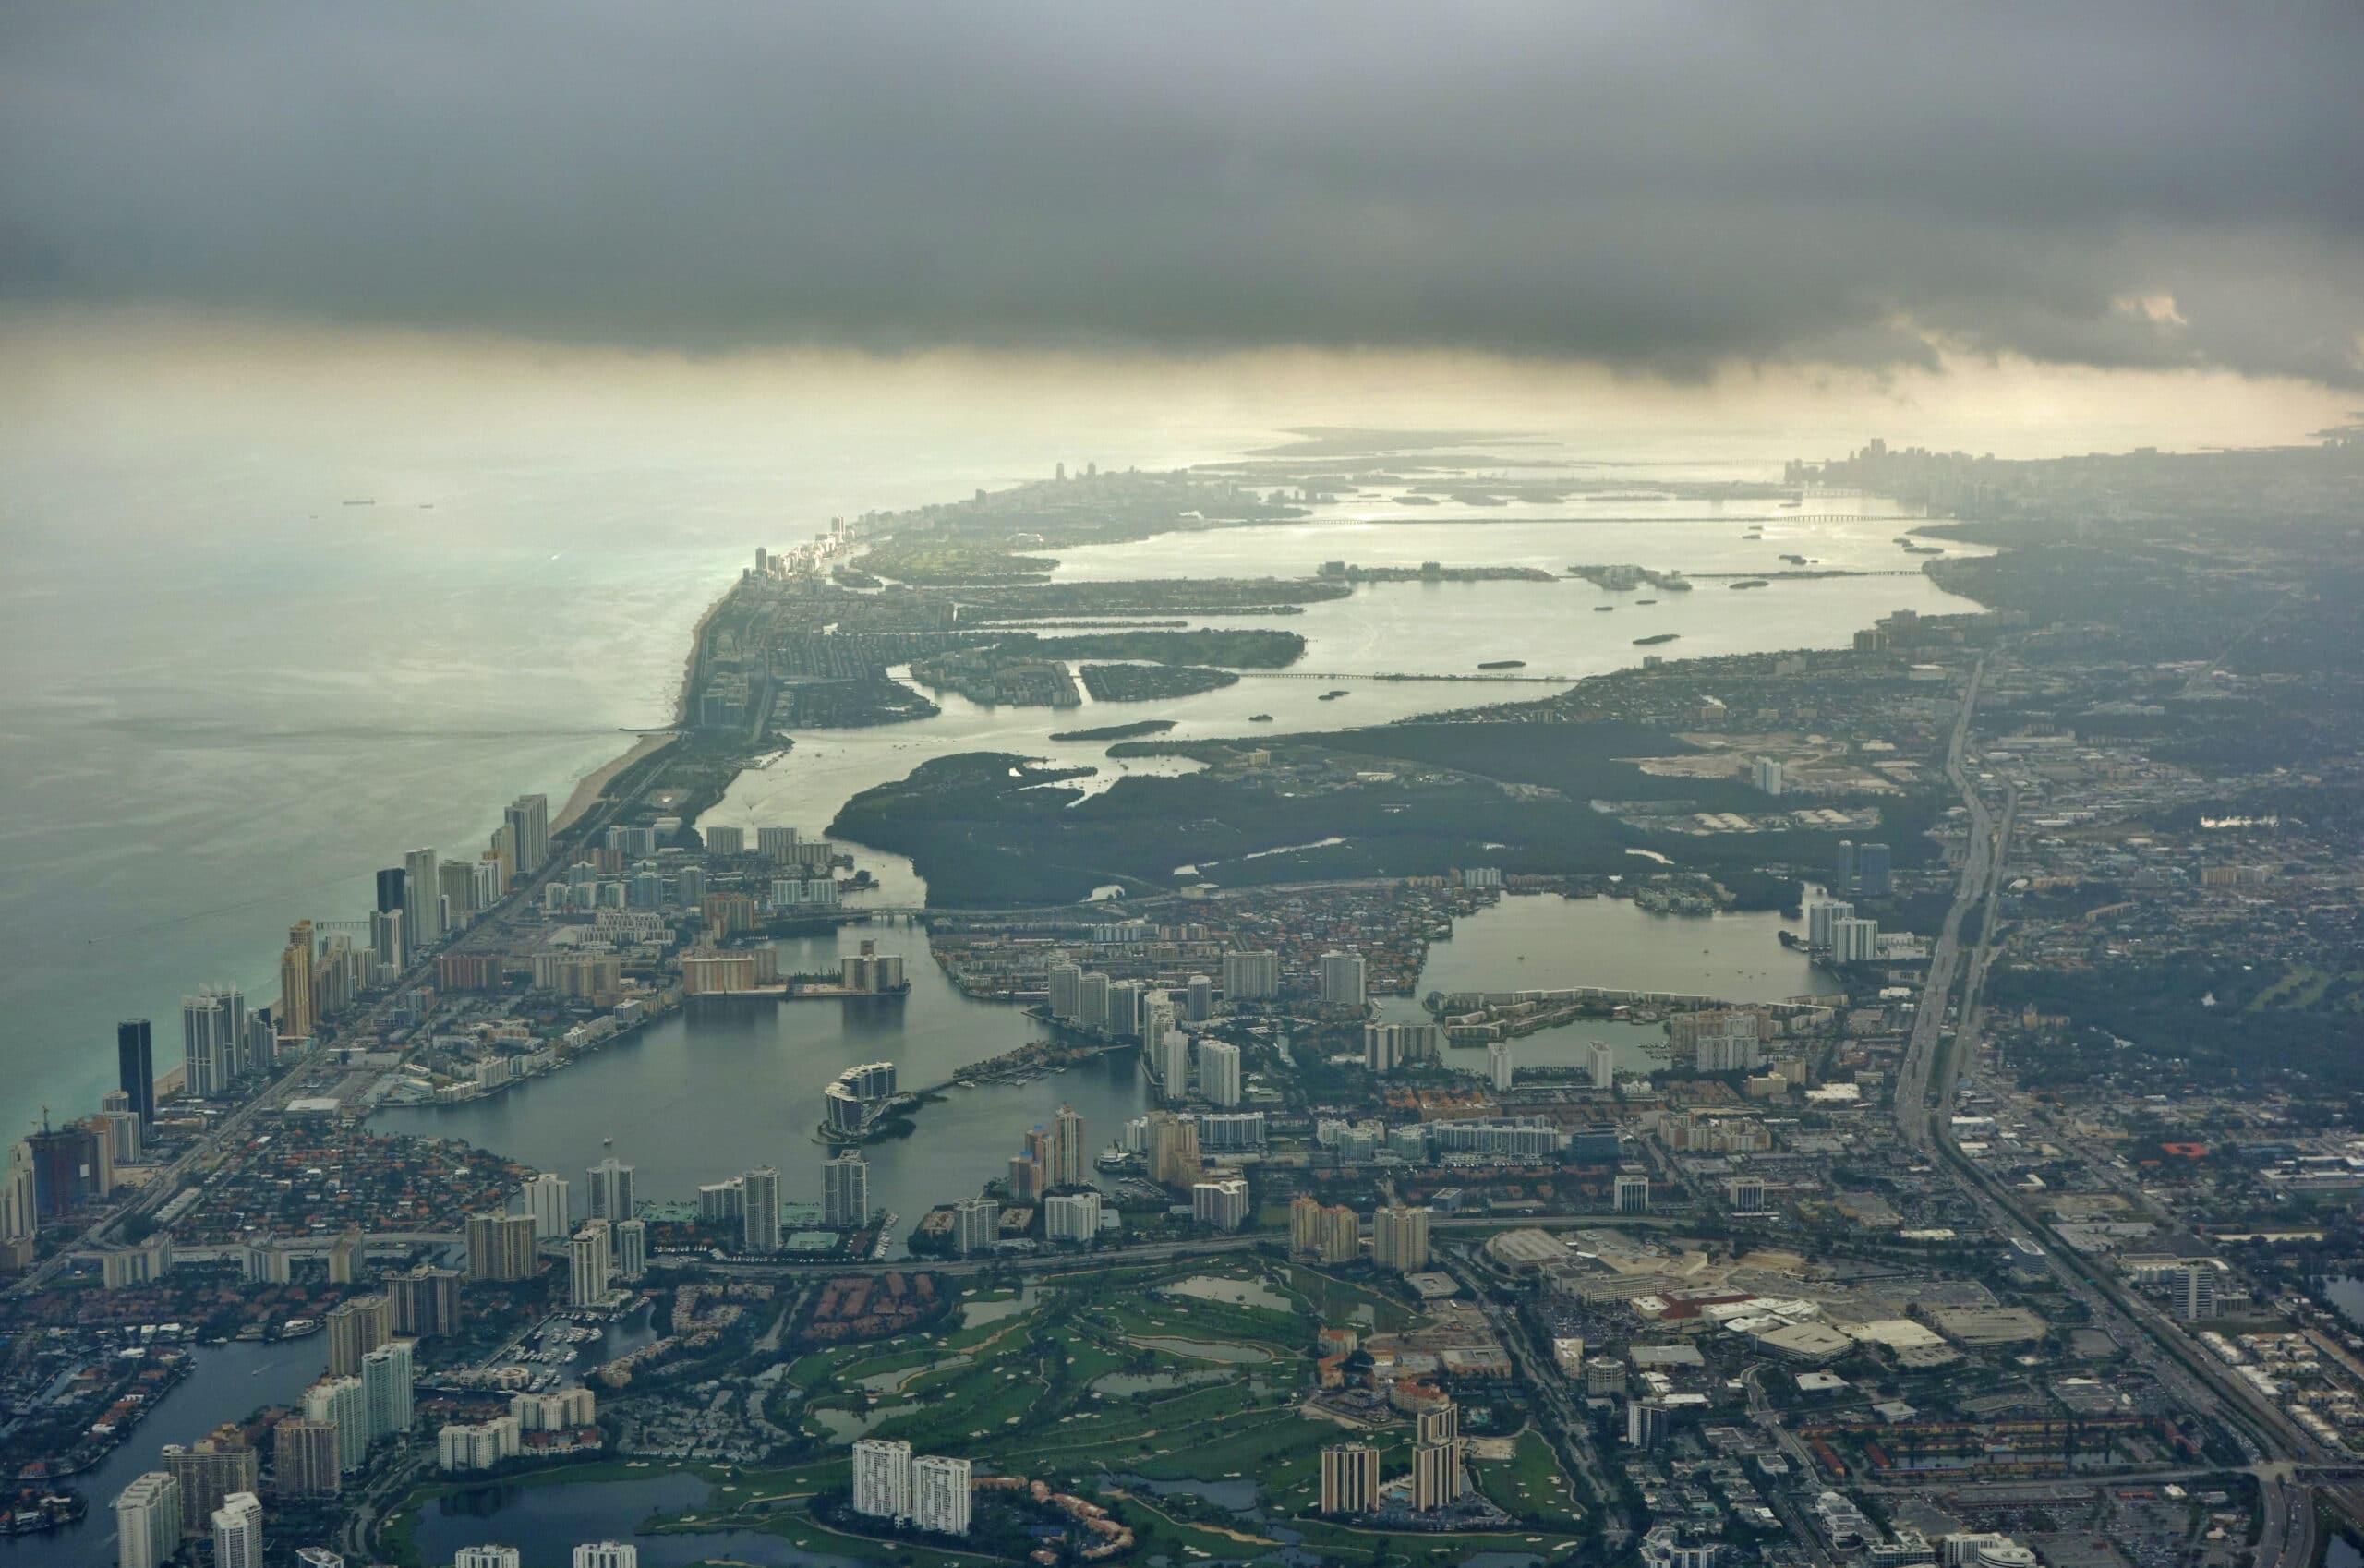 A dark cloud hovers over a coastal city in the United States, indicating climate change.